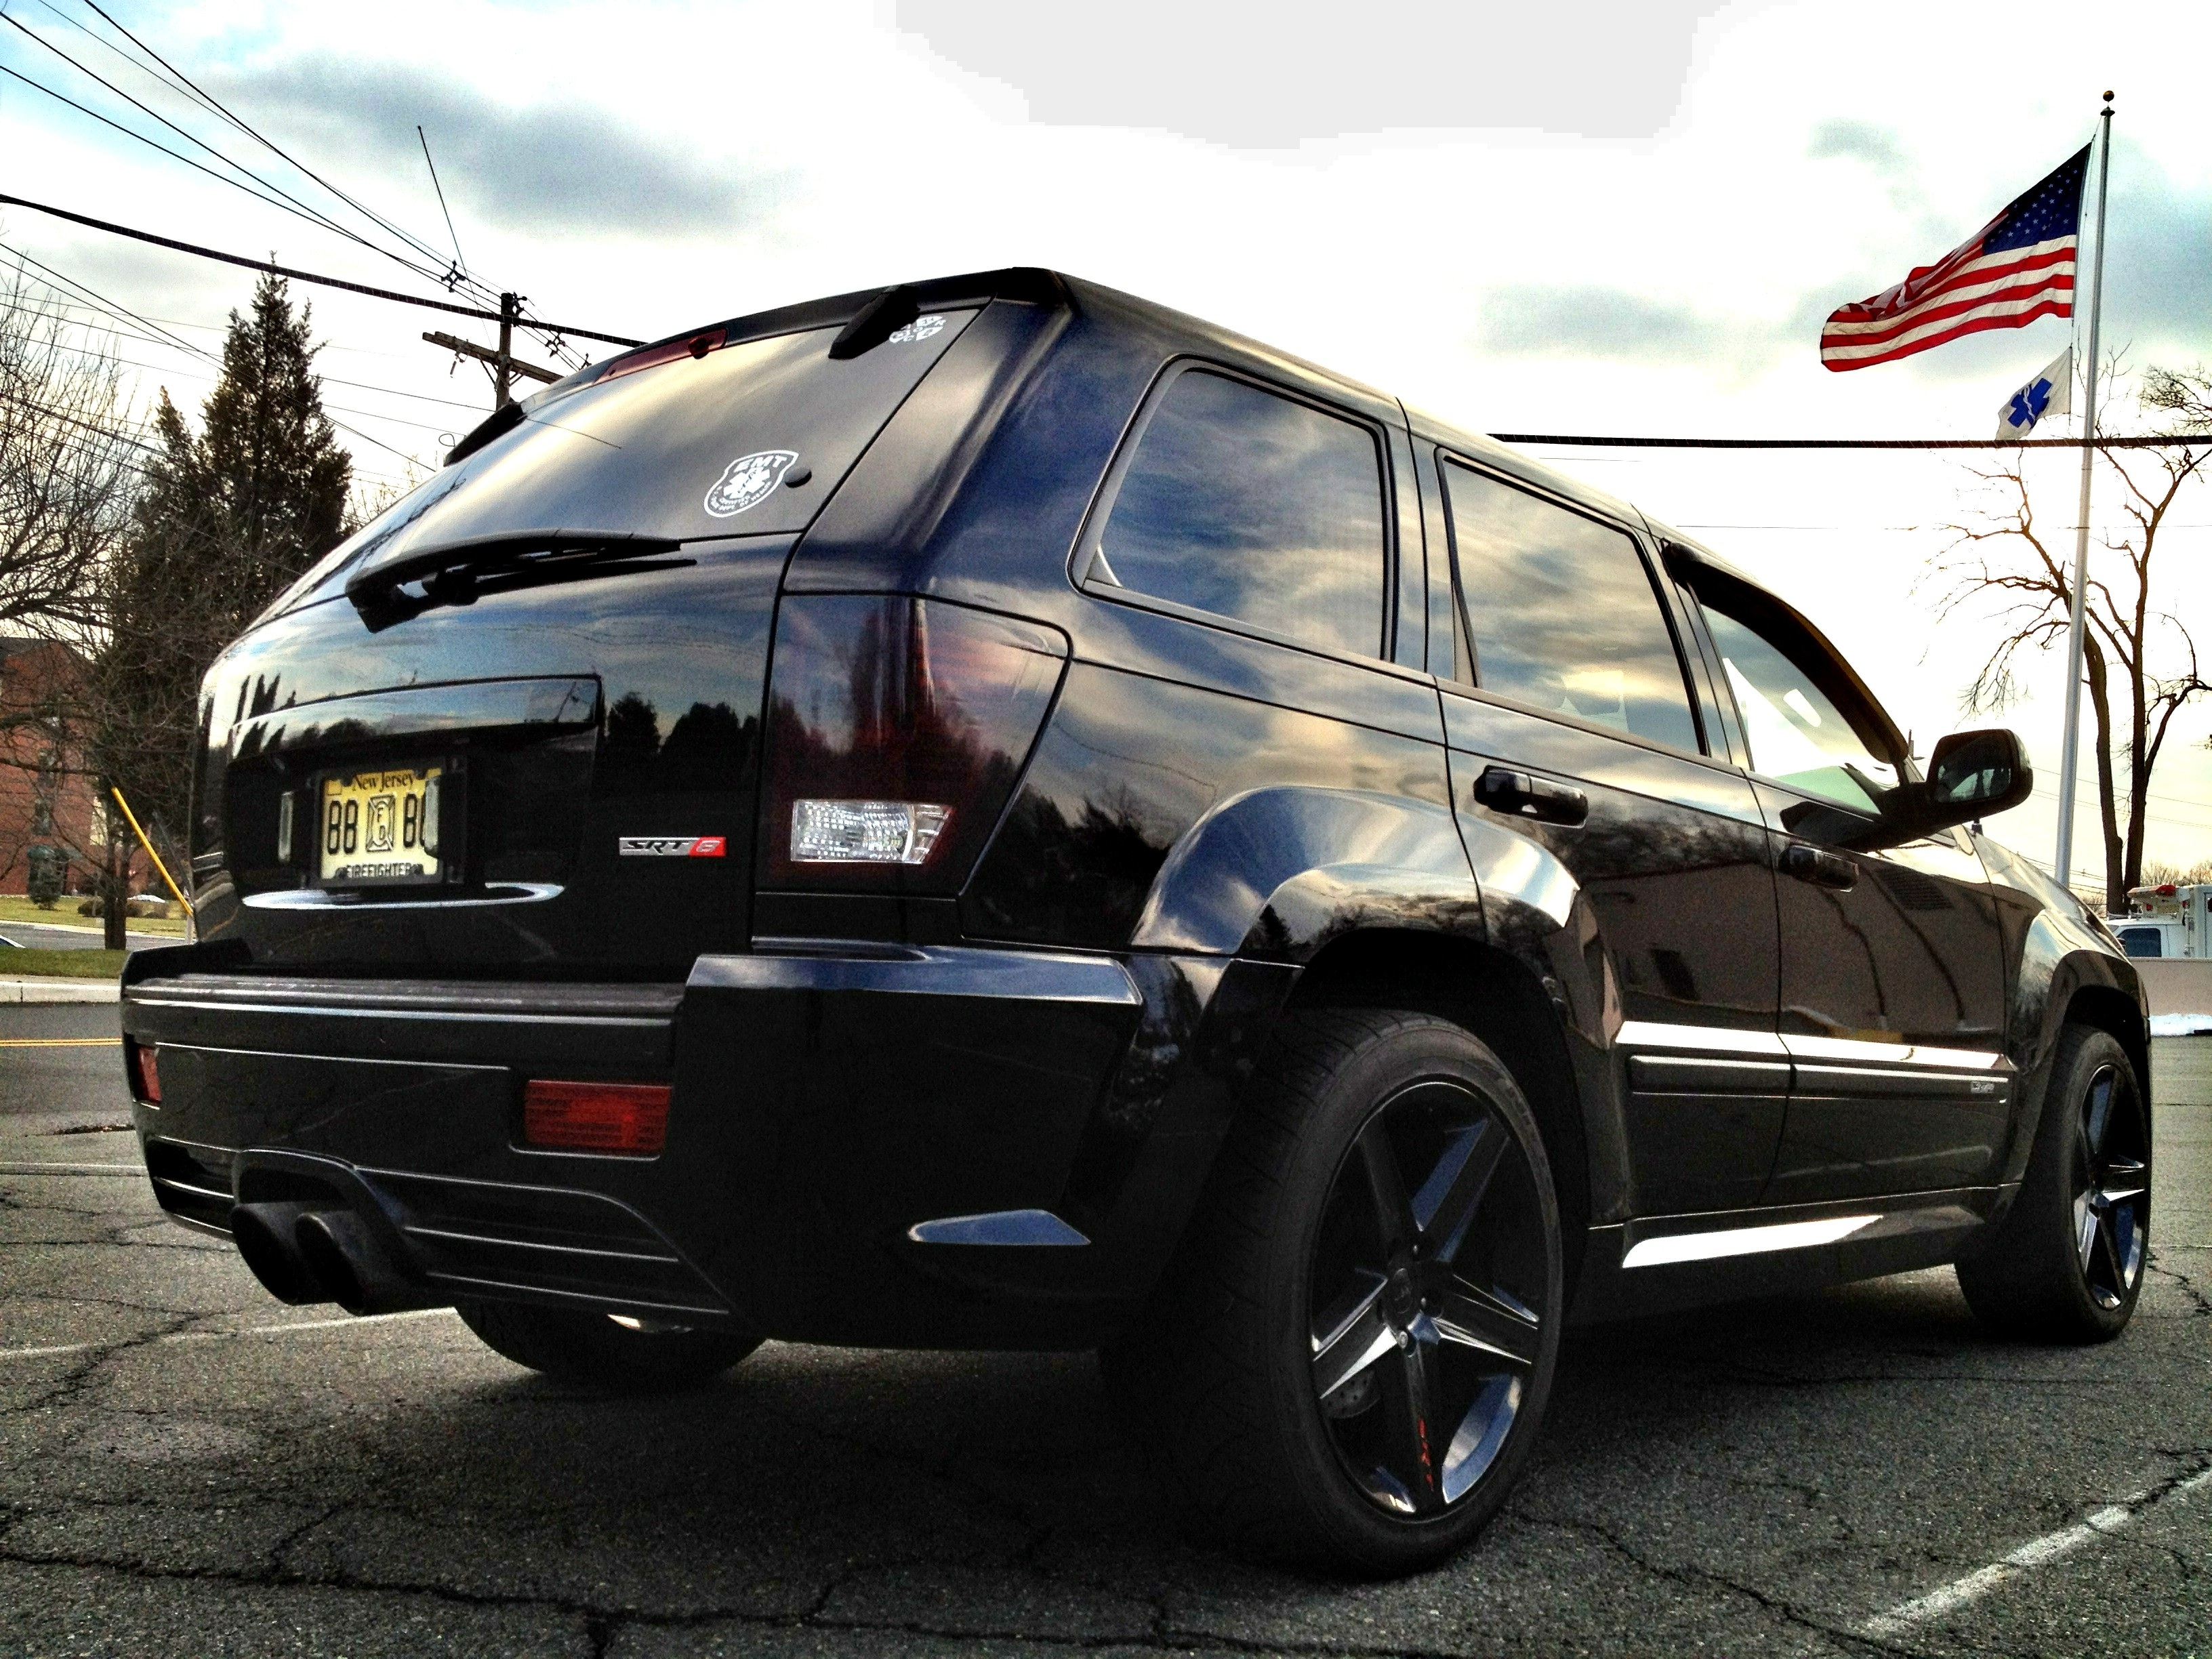 Doublegoose 2015 Jeep Grand Cherokeesrt 8 Sport Utility 4d Specs Photos Modification Info At Cardomain